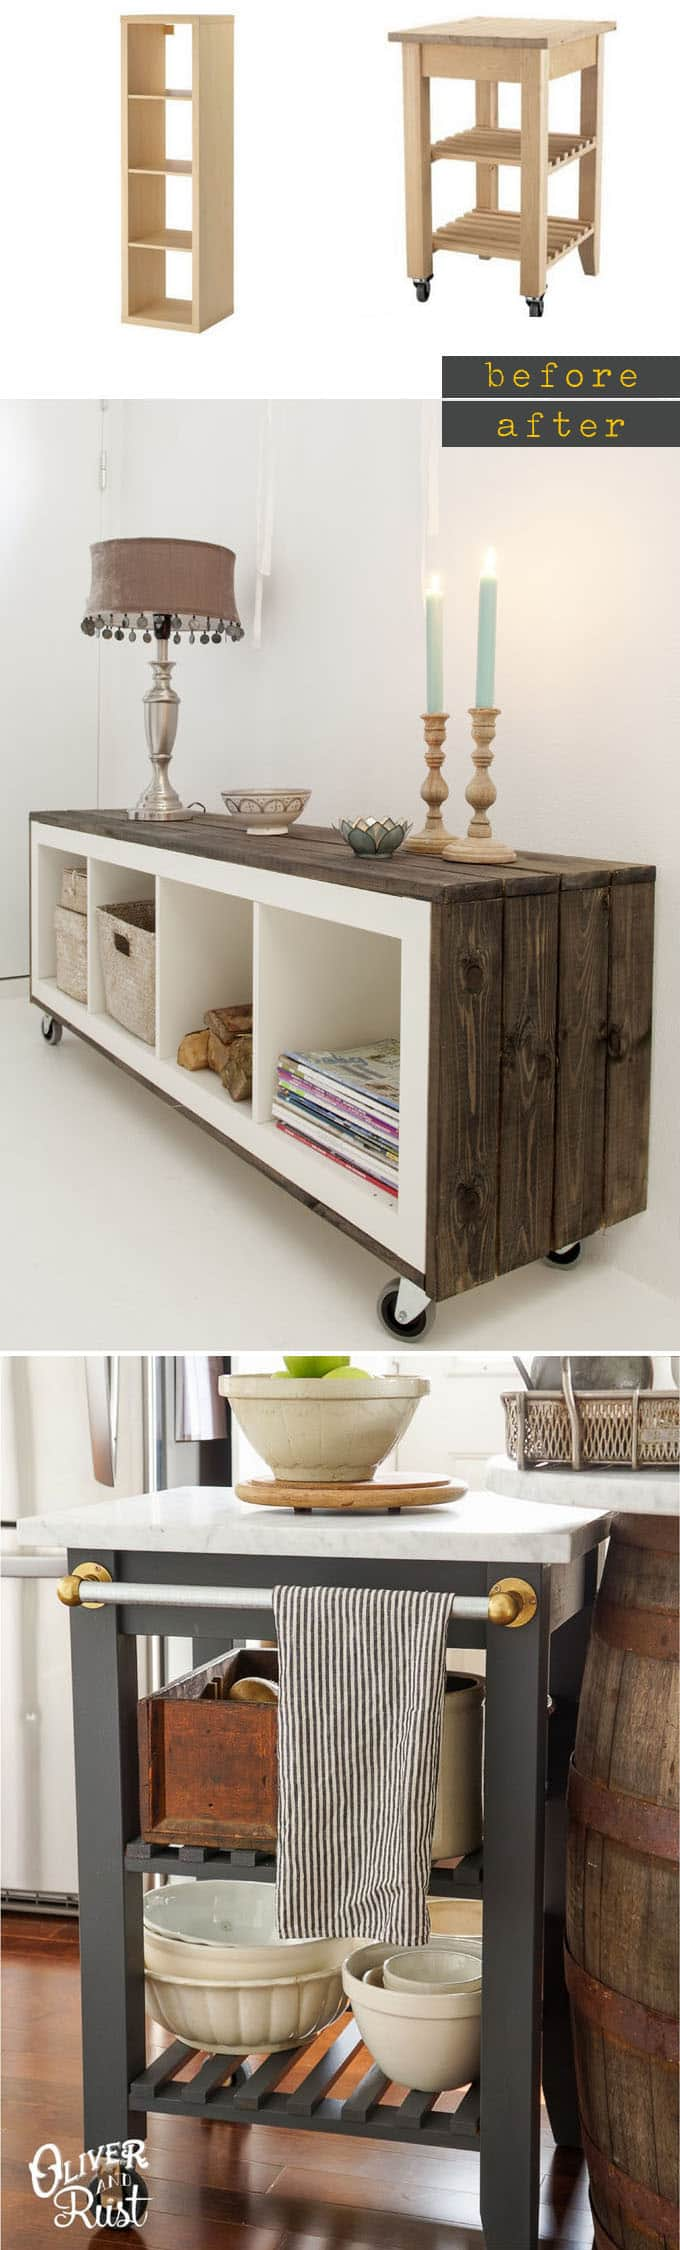 ikea furniture hacks. Ikea-hacks-custom-furniture-apieceofrainbow Ikea Furniture Hacks